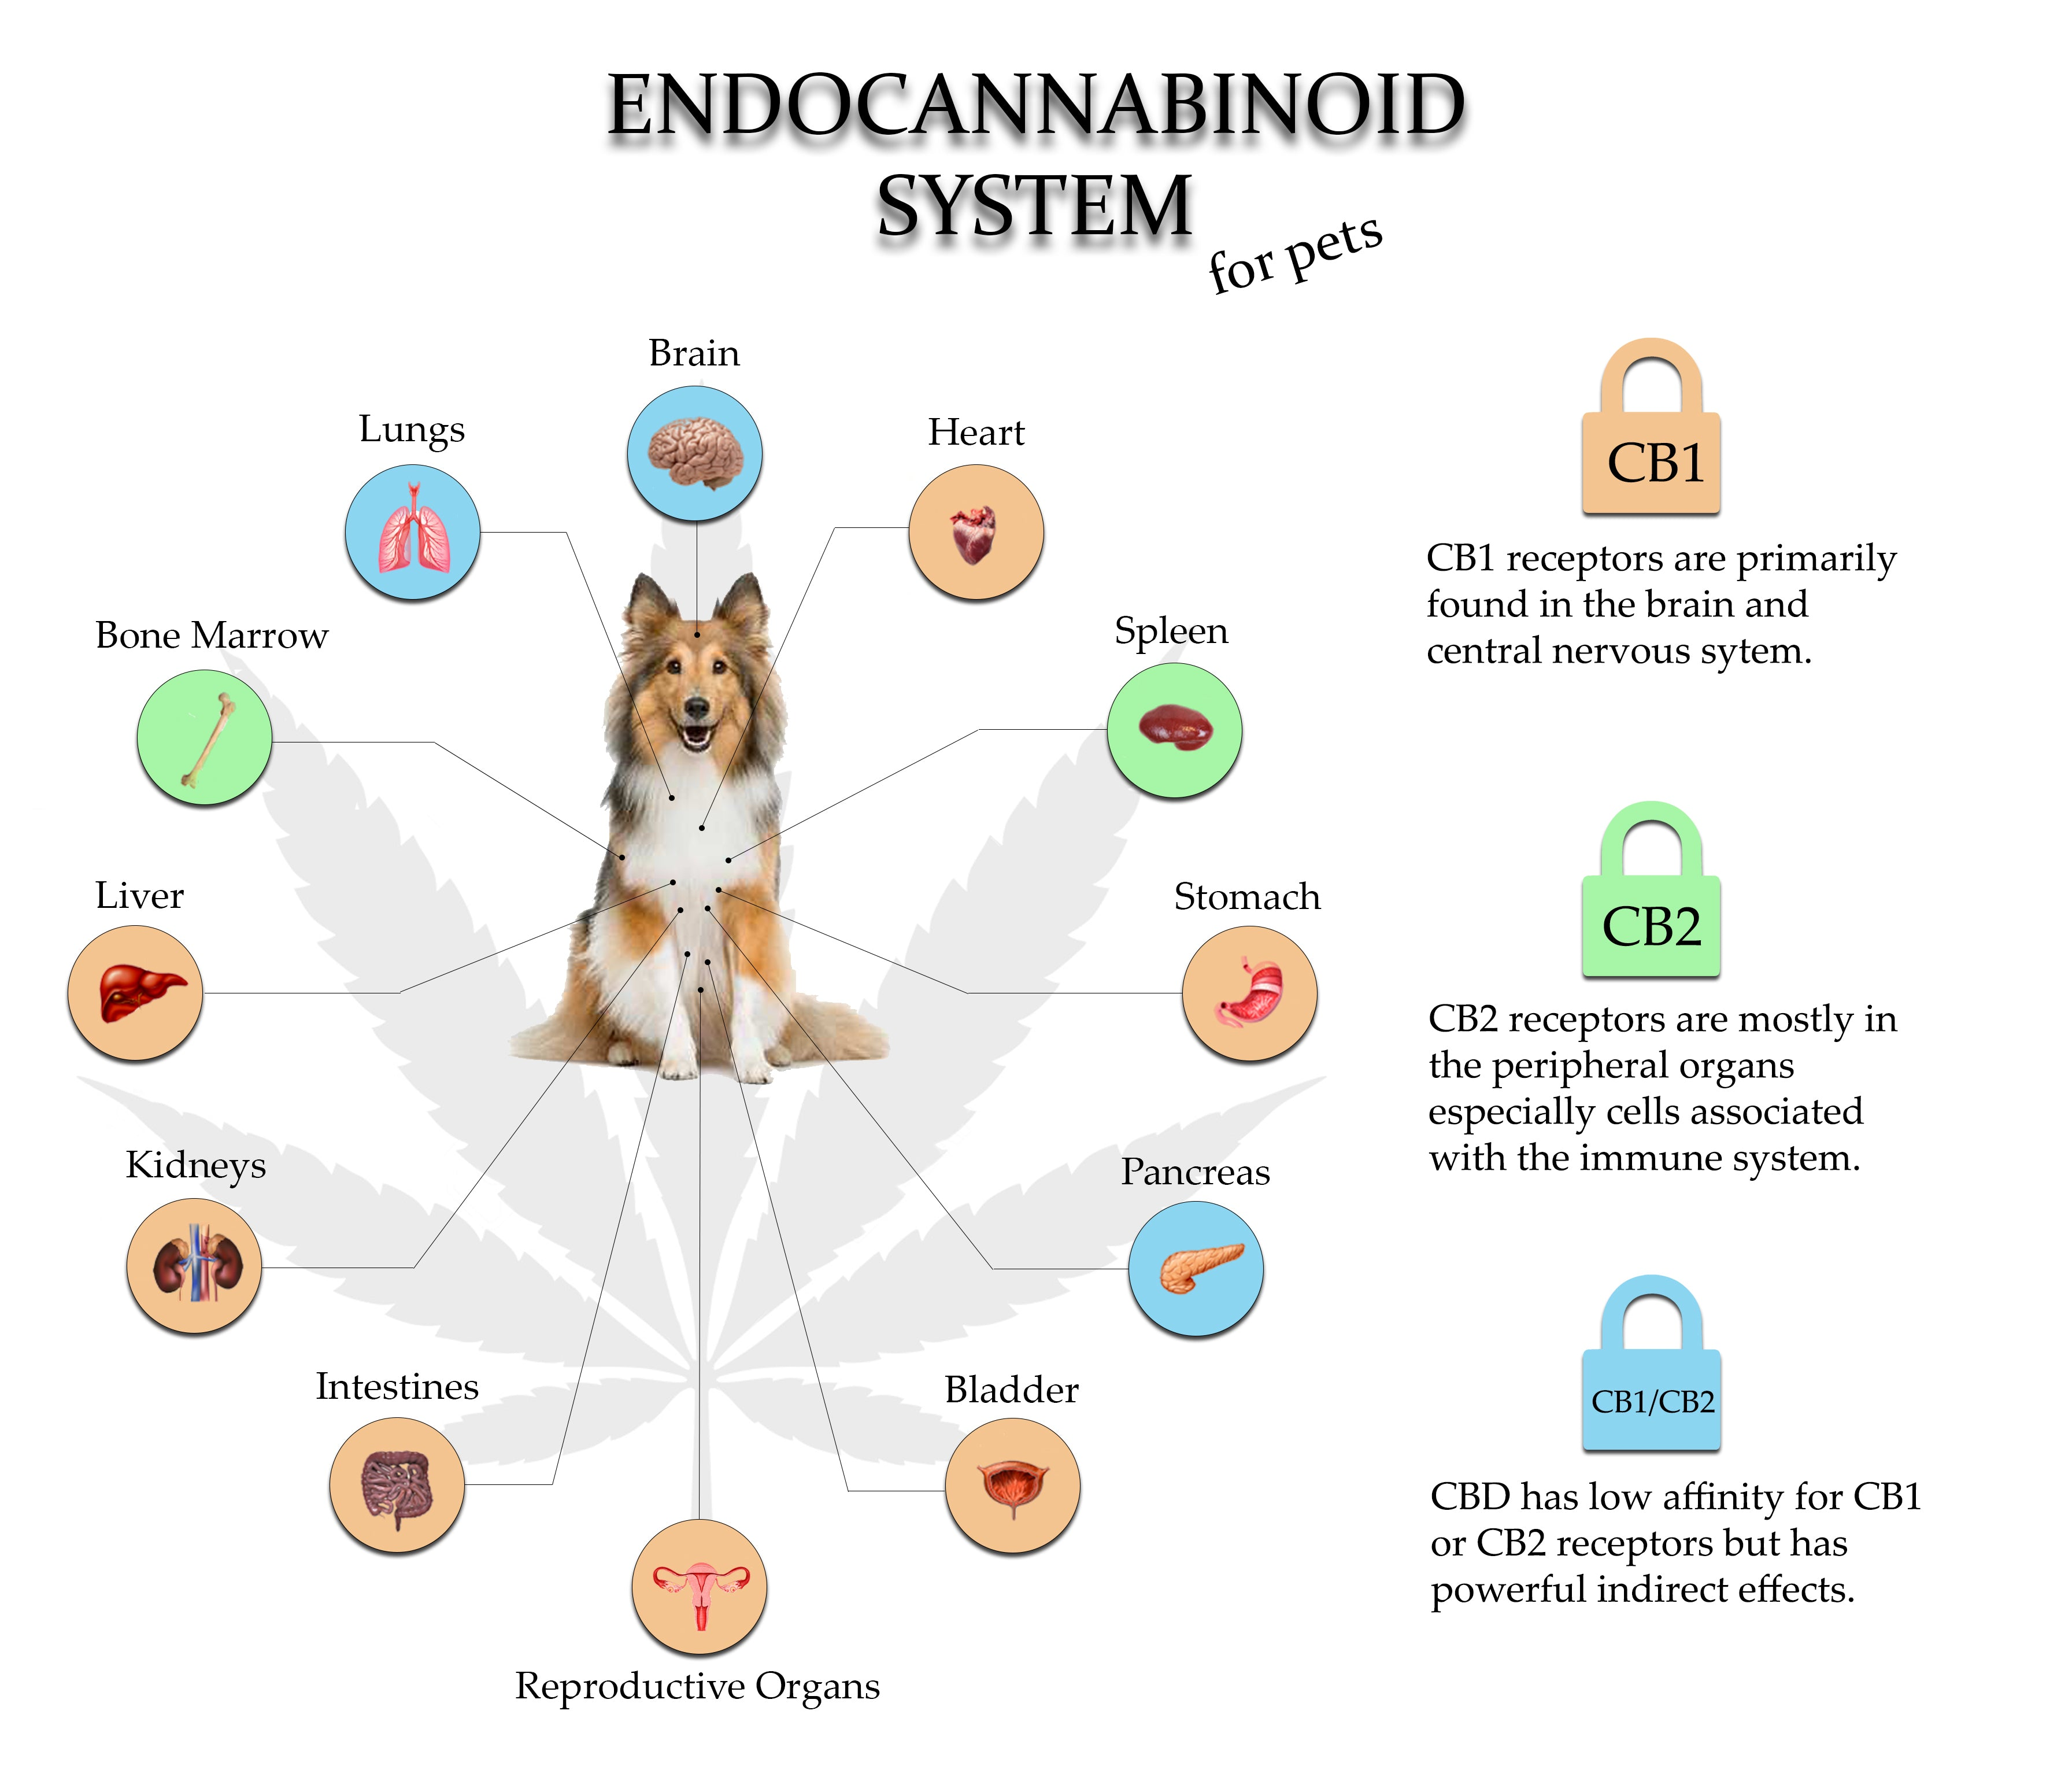 endocannabinoid system for pets